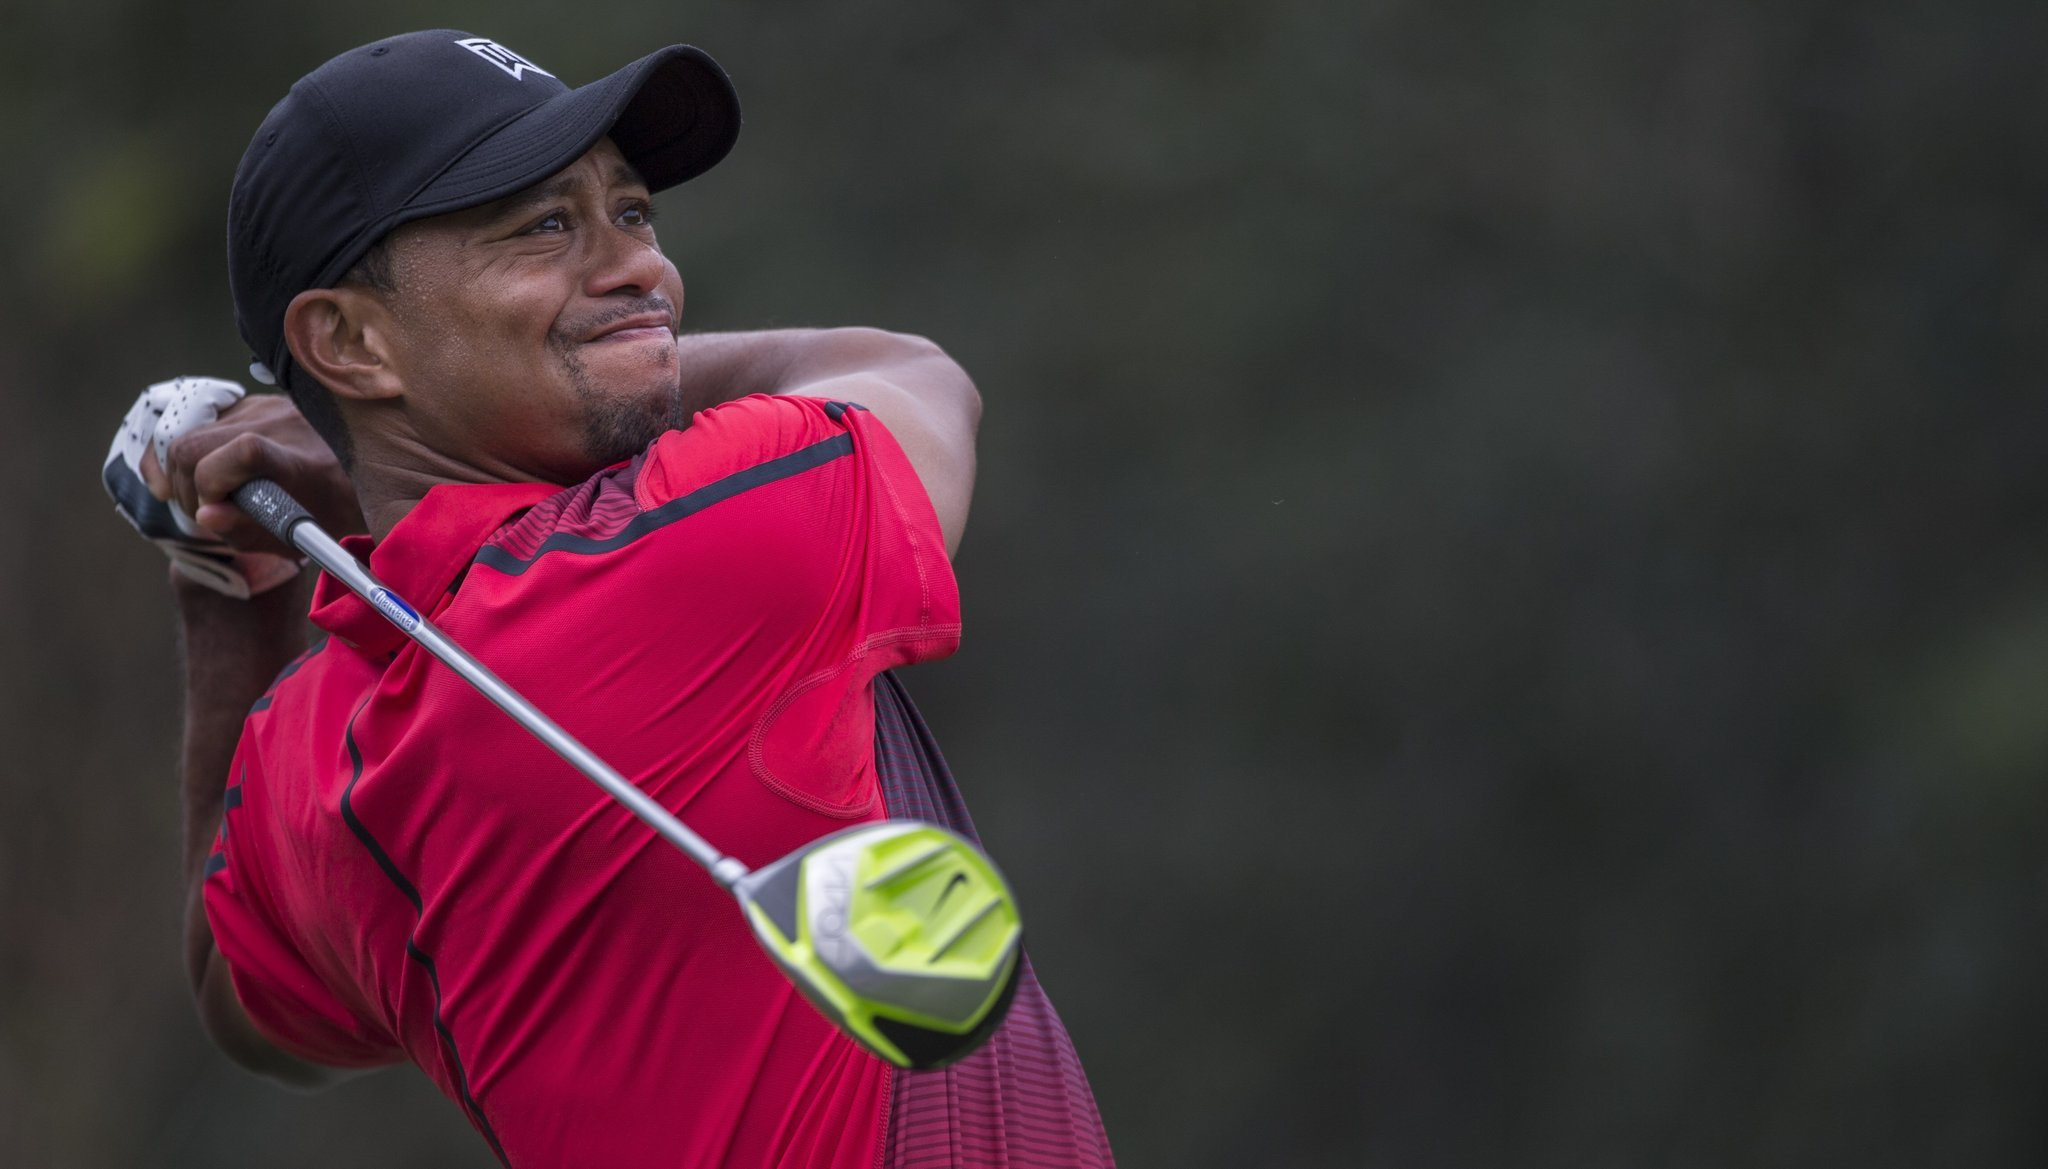 tiger woods enters 2015 with more questions than answers